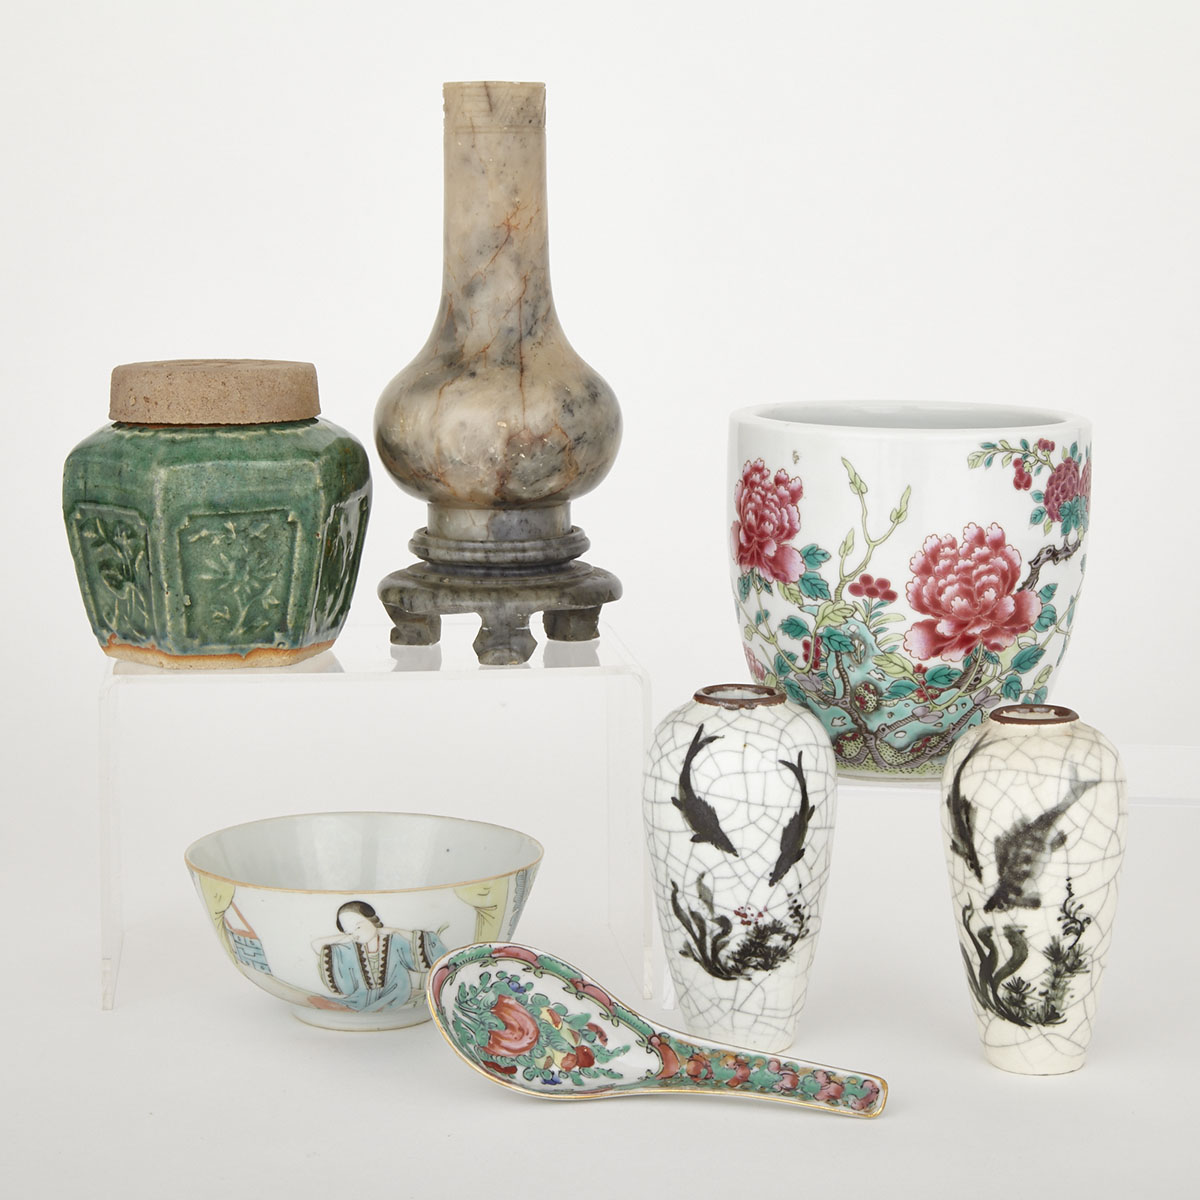 Group of Seven Asian Wares